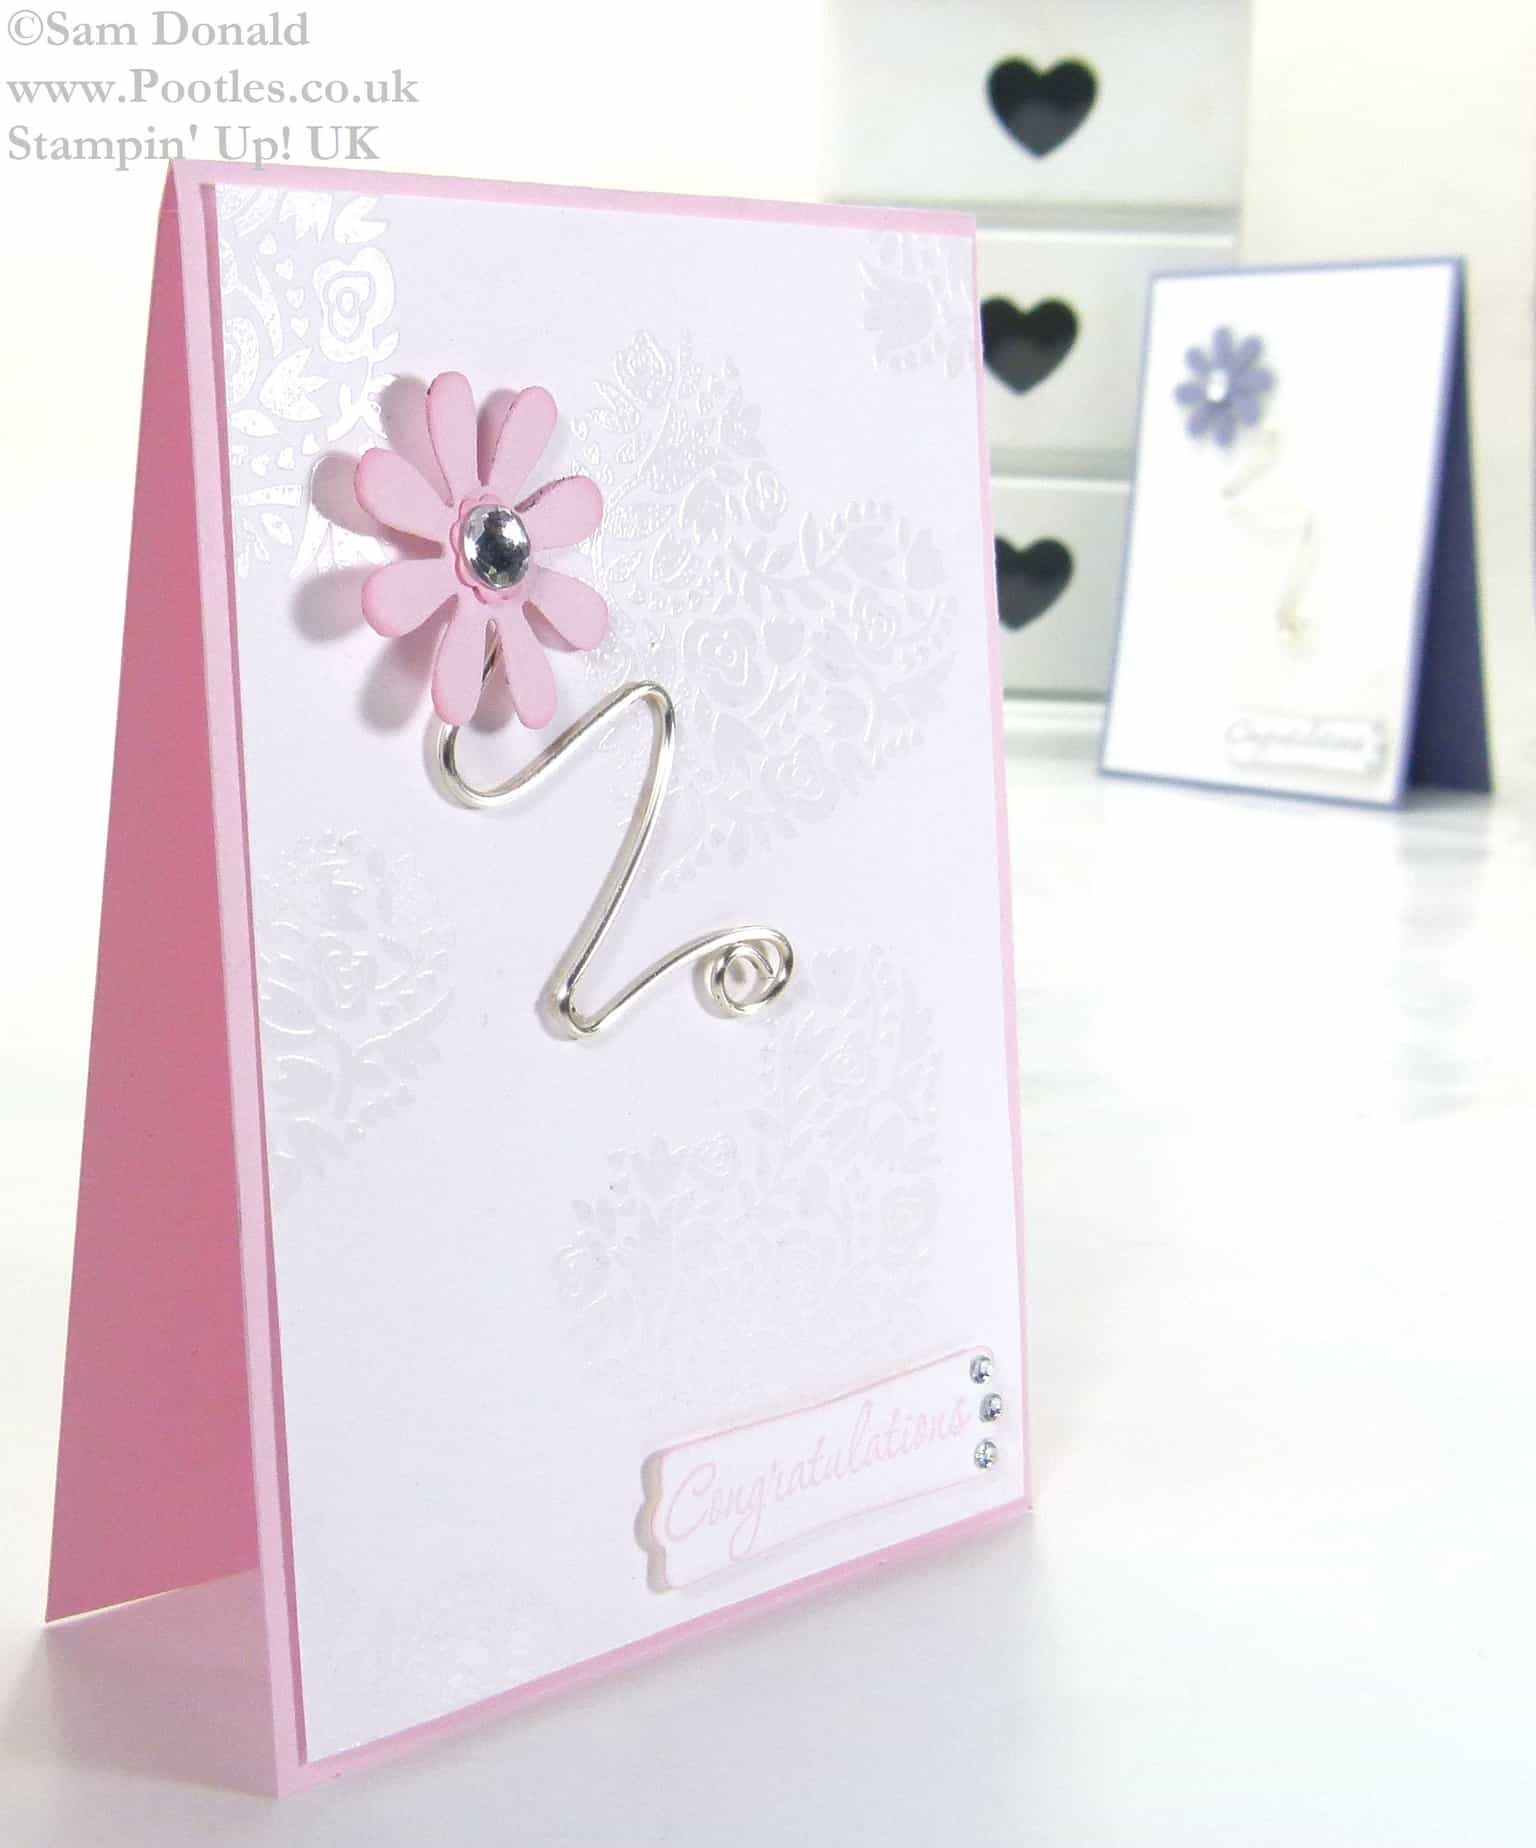 POOTLES Stampin Up UK Flowerfull Heart Wirework Congratulations Card 3